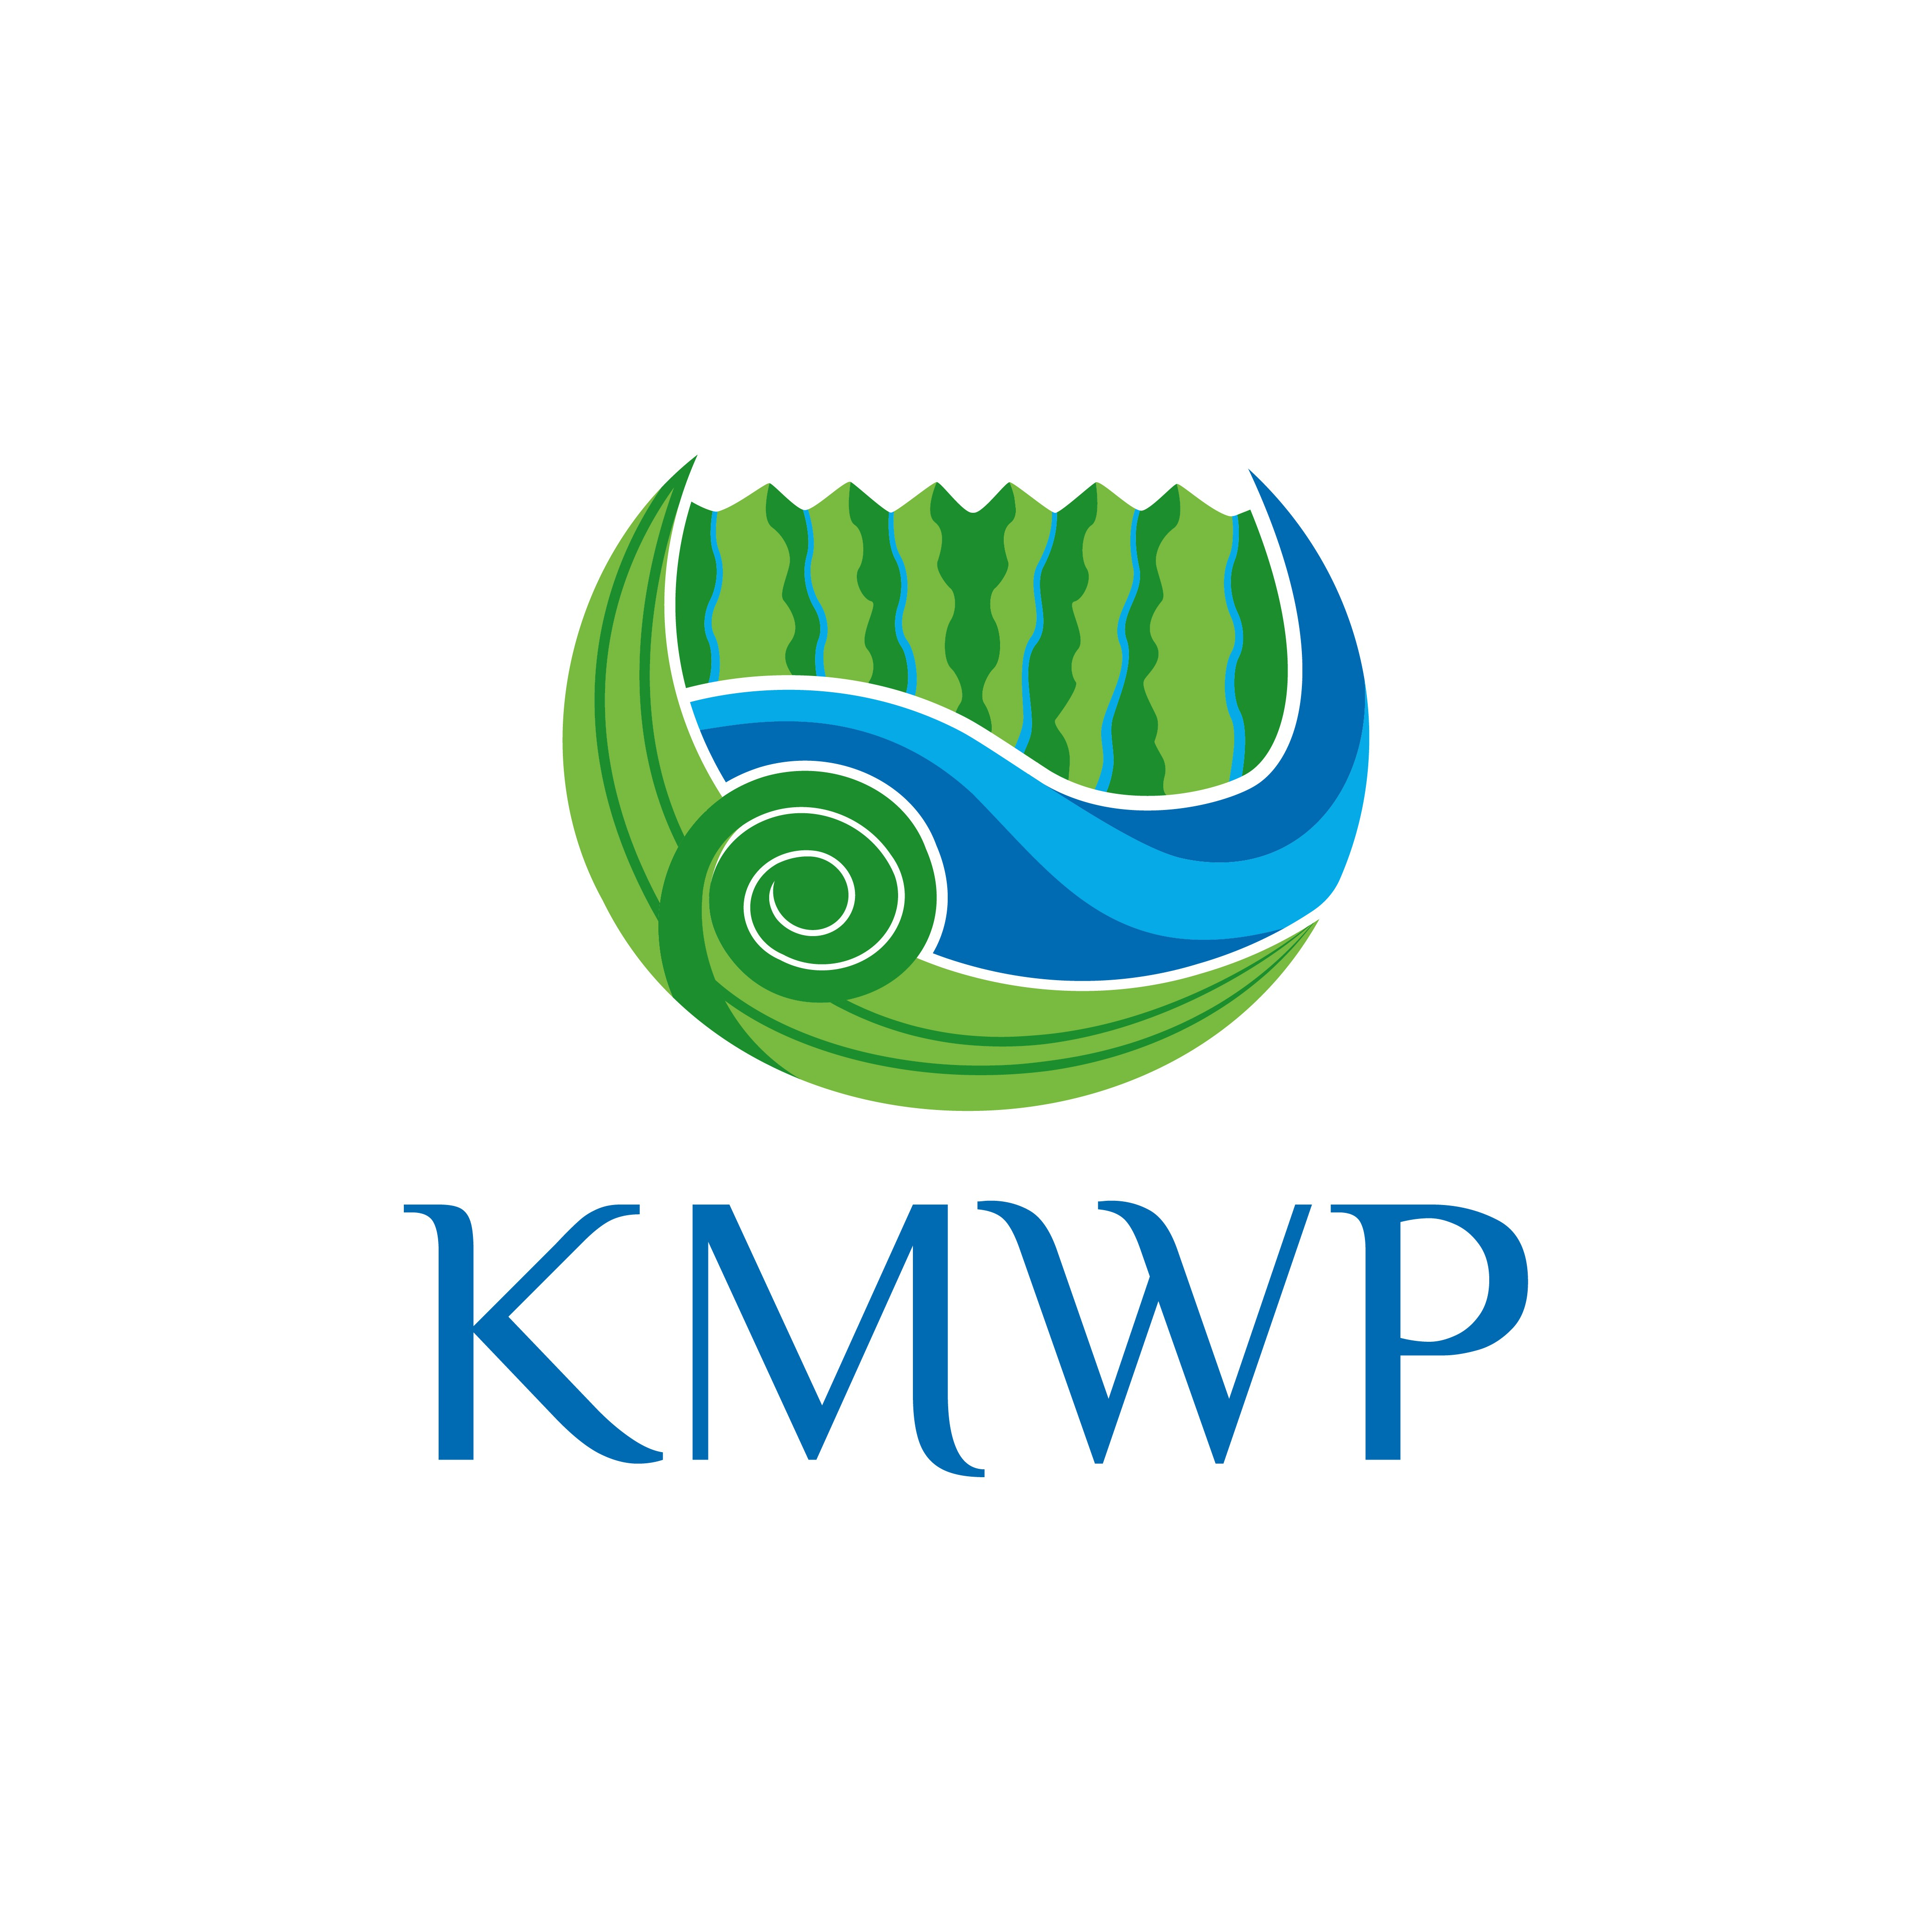 We need a powerful meaningful logo for our environmental organization